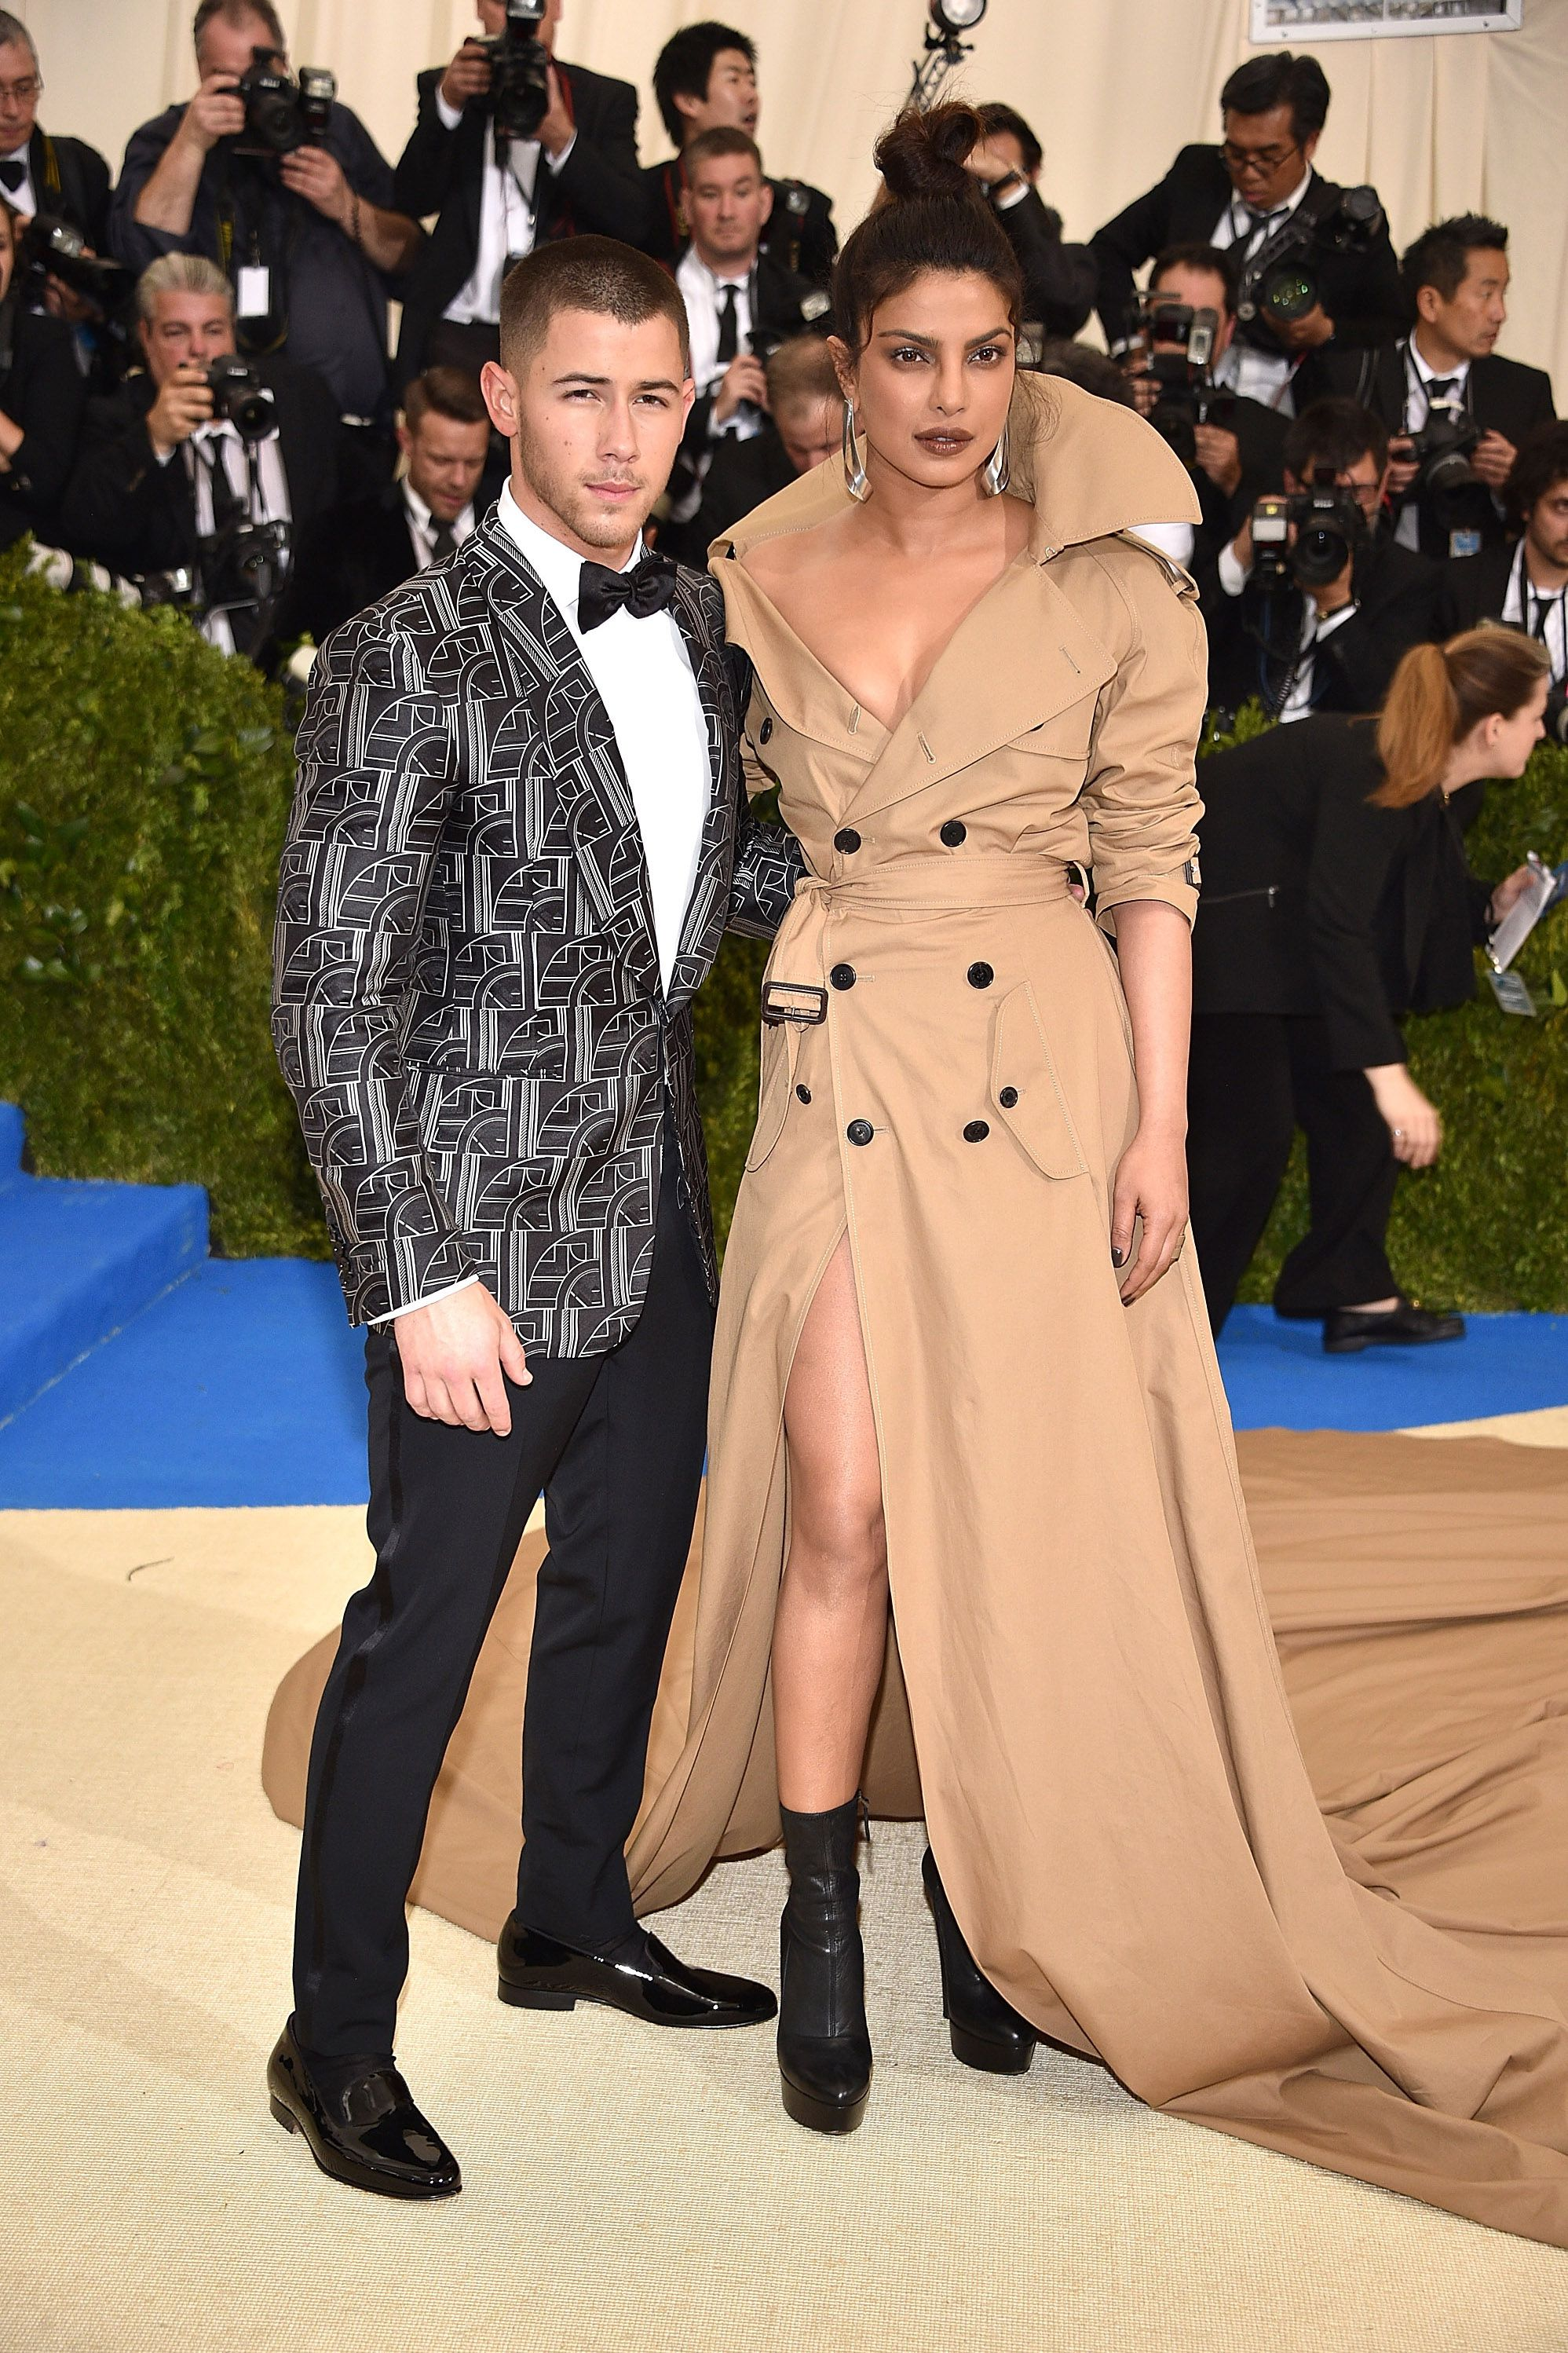 Nick Jonas And Priyanka Chopra Might Be Getting Married Soon